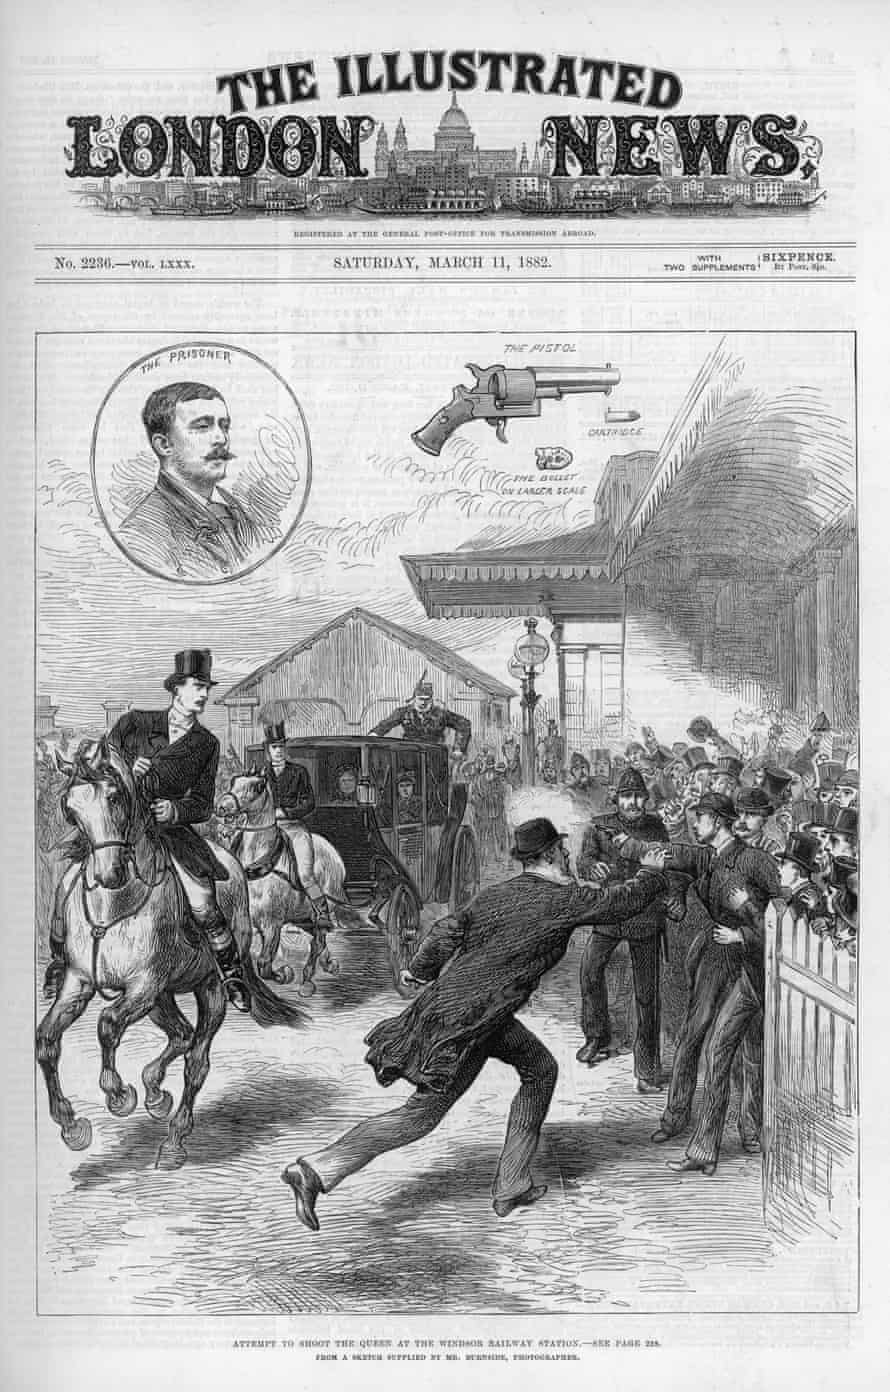 Assassination attempt against Queen Victoria in 1882 at Windsor railway station